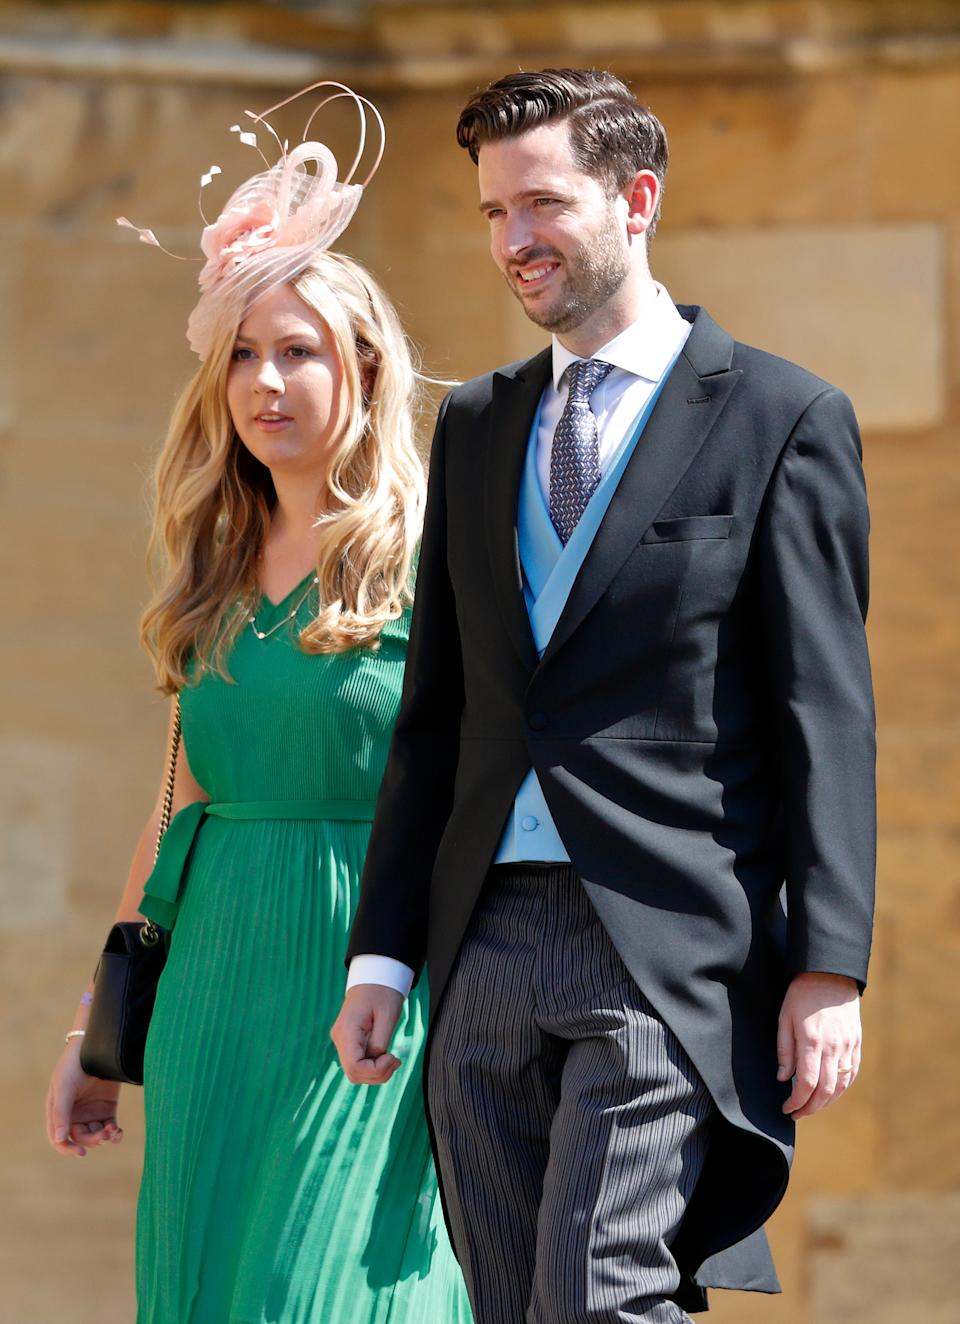 WINDSOR, UNITED KINGDOM - MAY 19: (EMBARGOED FOR PUBLICATION IN UK NEWSPAPERS UNTIL 24 HOURS AFTER CREATE DATE AND TIME) Jason Knauf, Communications Secretary to The Duke and Duchess of Cambridge and The Duke and Duchess of Sussex, attends the wedding of Prince Harry to Ms Meghan Markle at St George's Chapel, Windsor Castle on May 19, 2018 in Windsor, England. Prince Henry Charles Albert David of Wales marries Ms. Meghan Markle in a service at St George's Chapel inside the grounds of Windsor Castle. Among the guests were 2200 members of the public, the royal family and Ms. Markle's Mother Doria Ragland. (Photo by Max Mumby/Indigo/Getty Images)